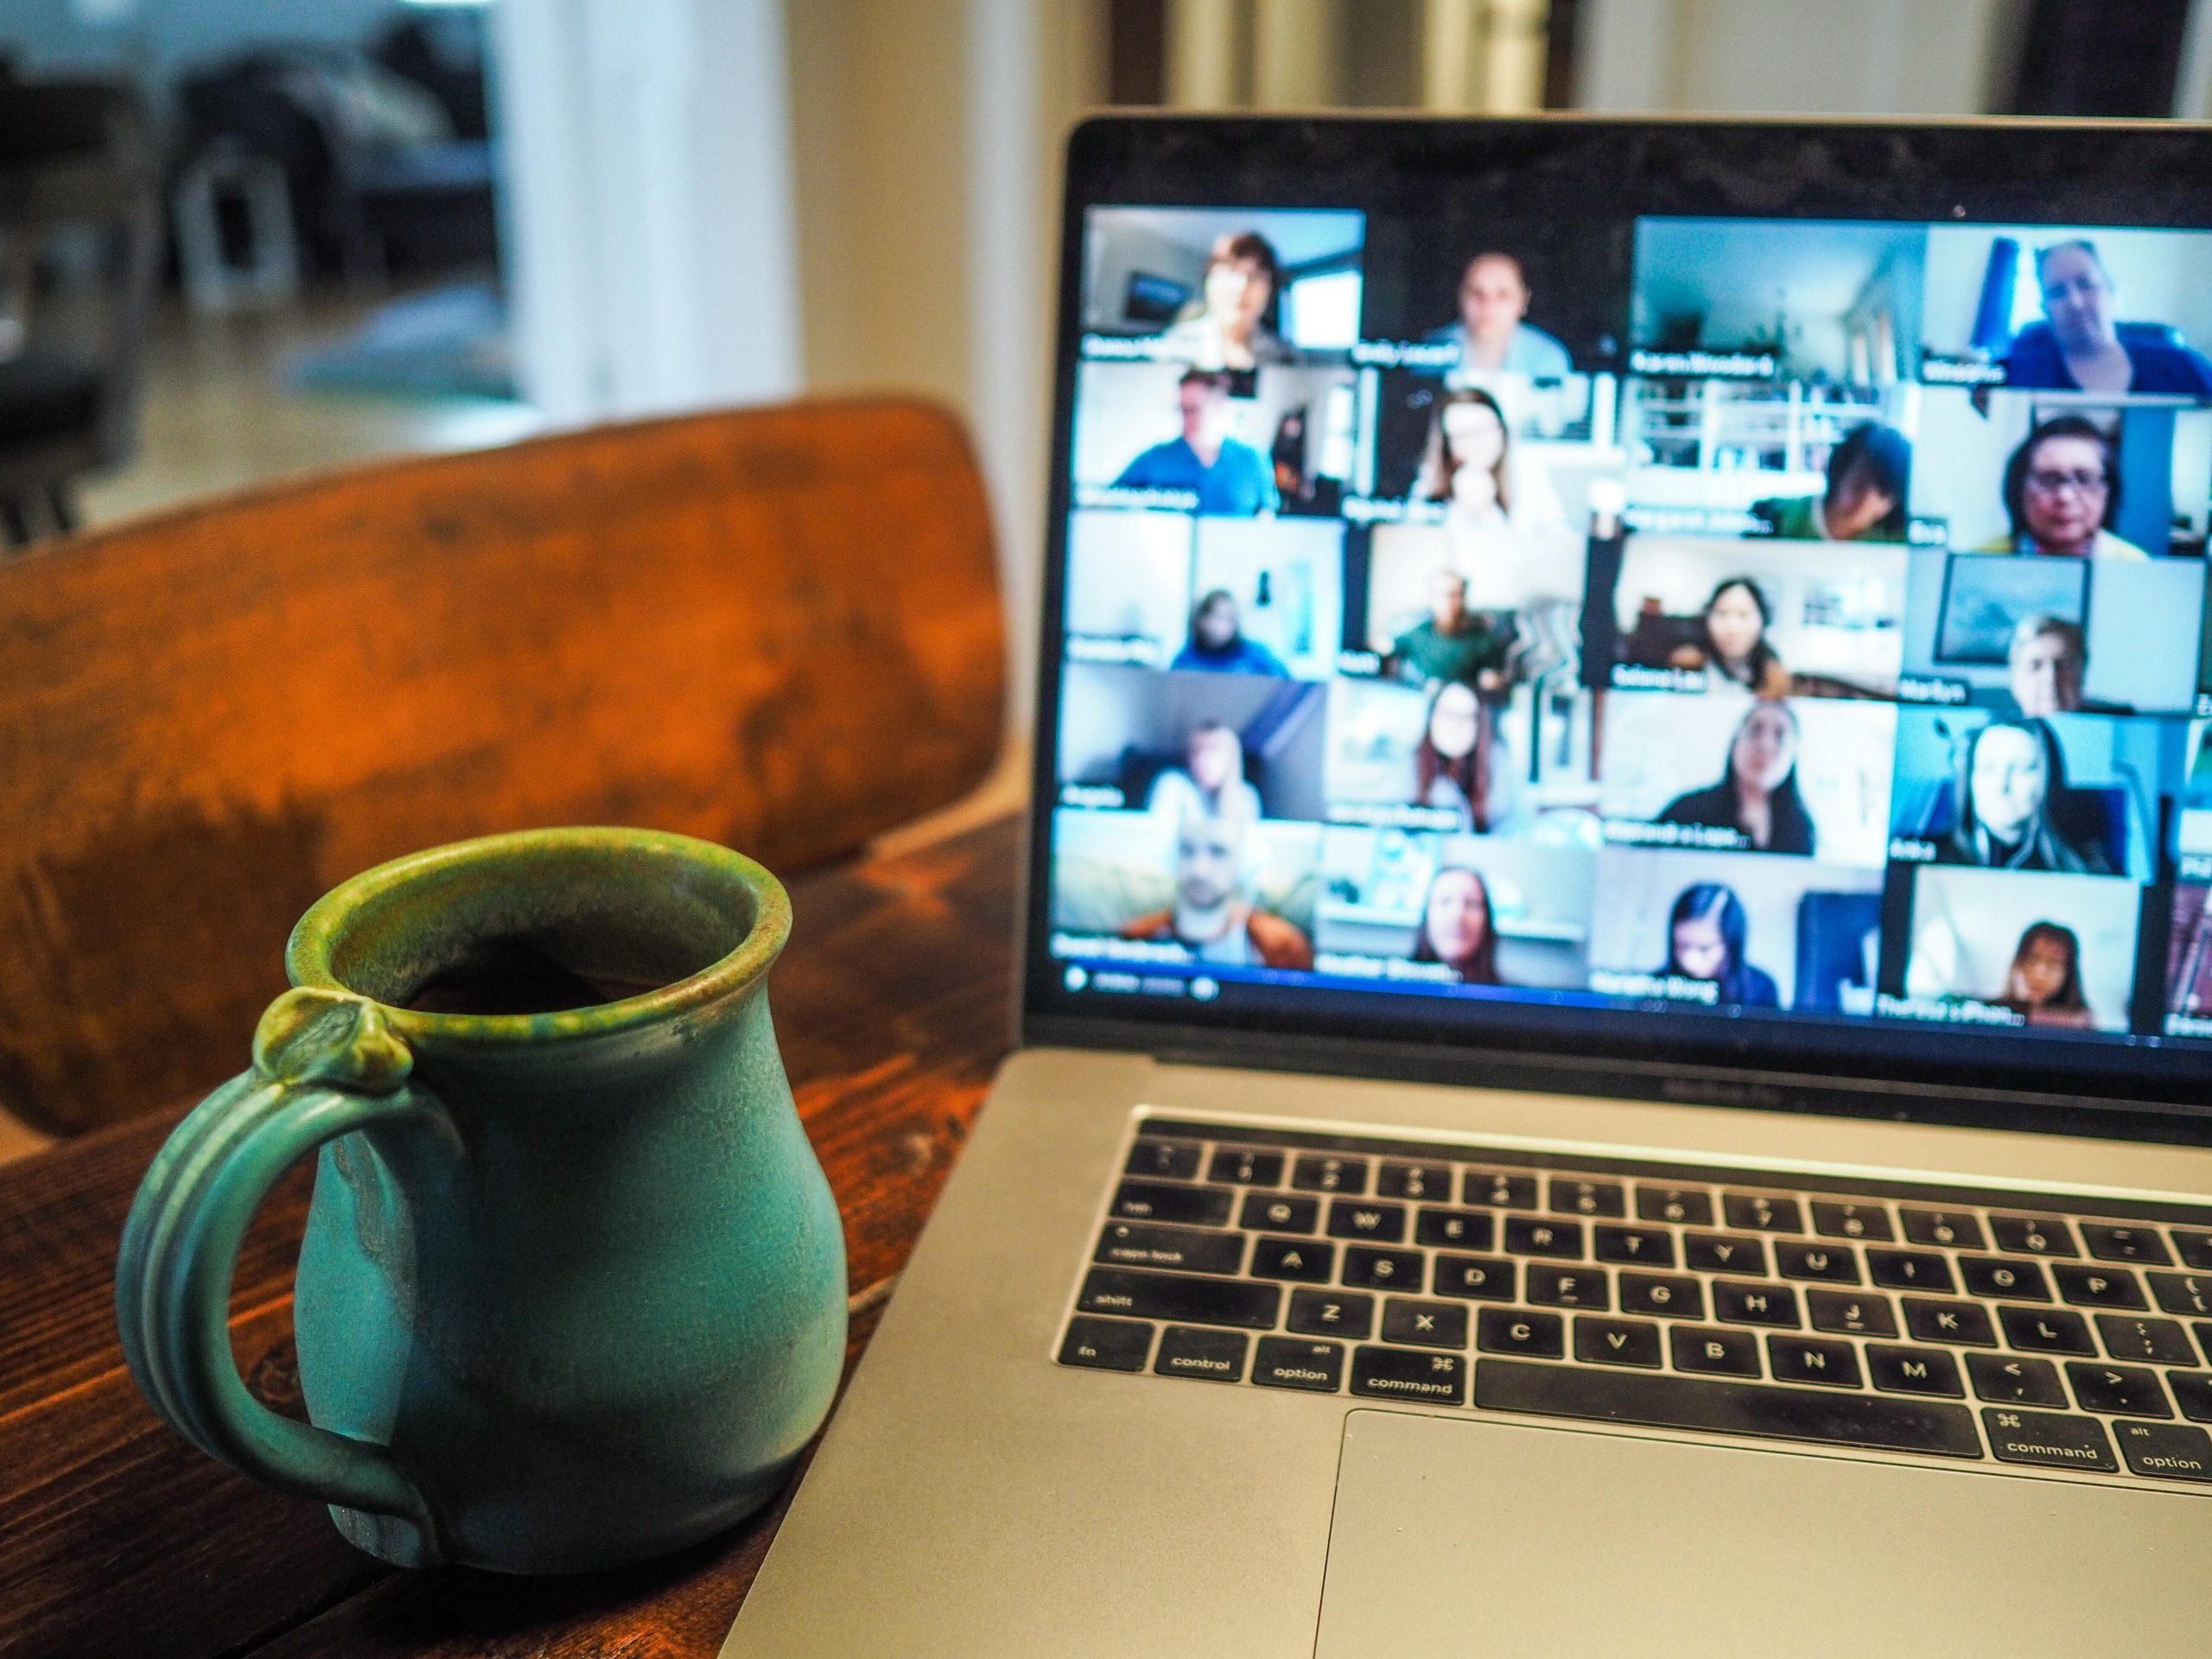 4 Things to Consider When Choosing What Virtual Events to Attend